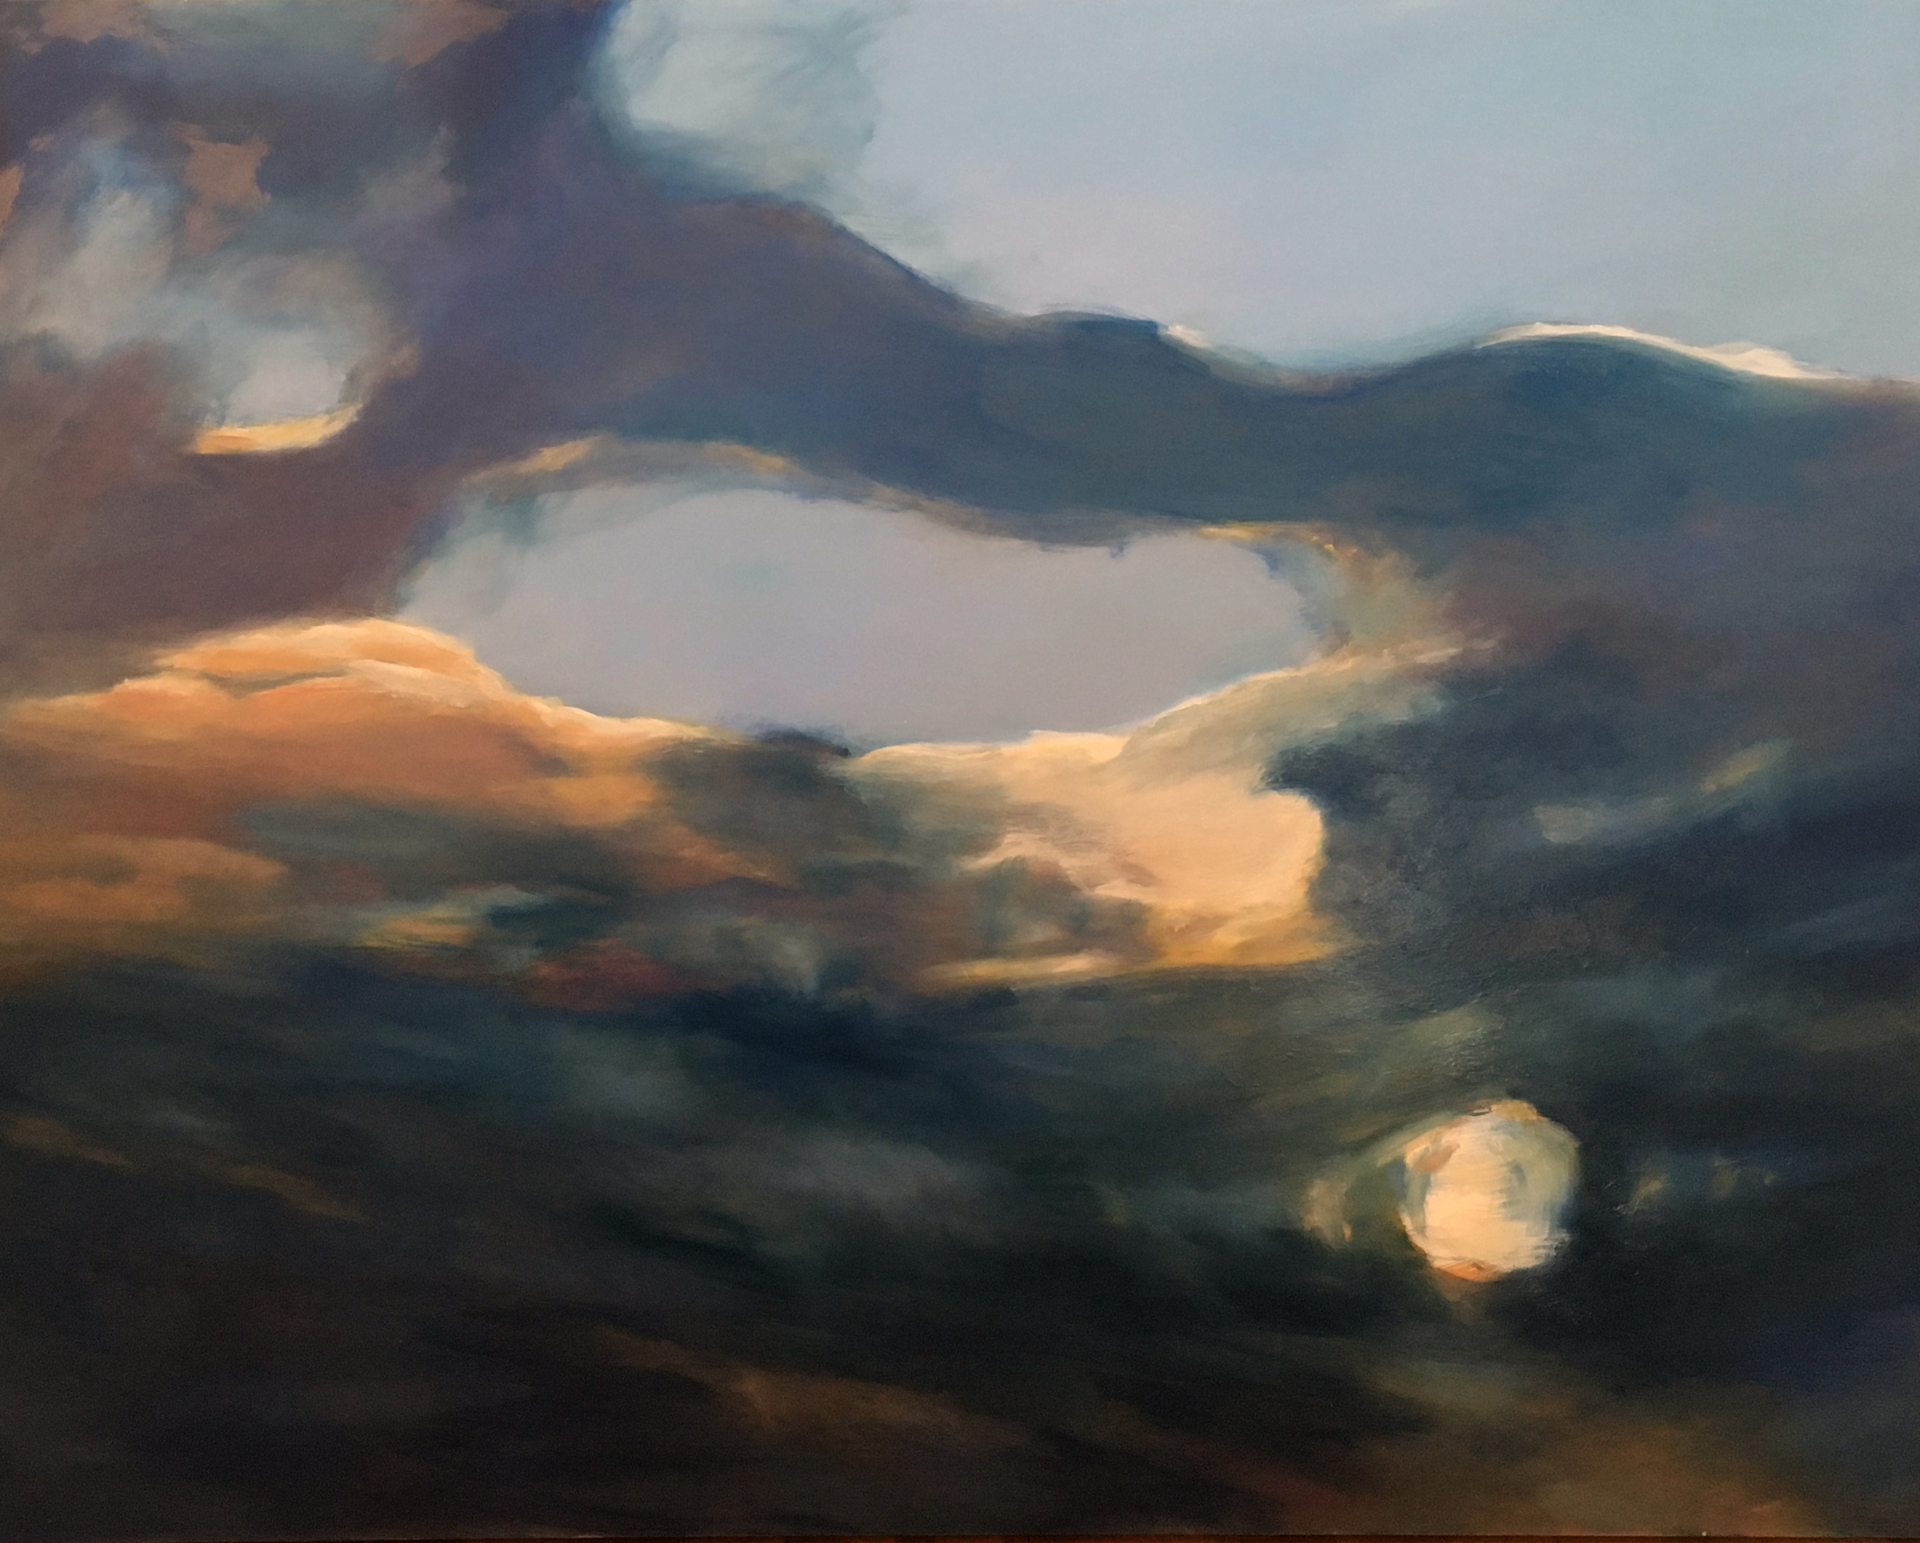 'Light Through the Clouds' by Sally Breen